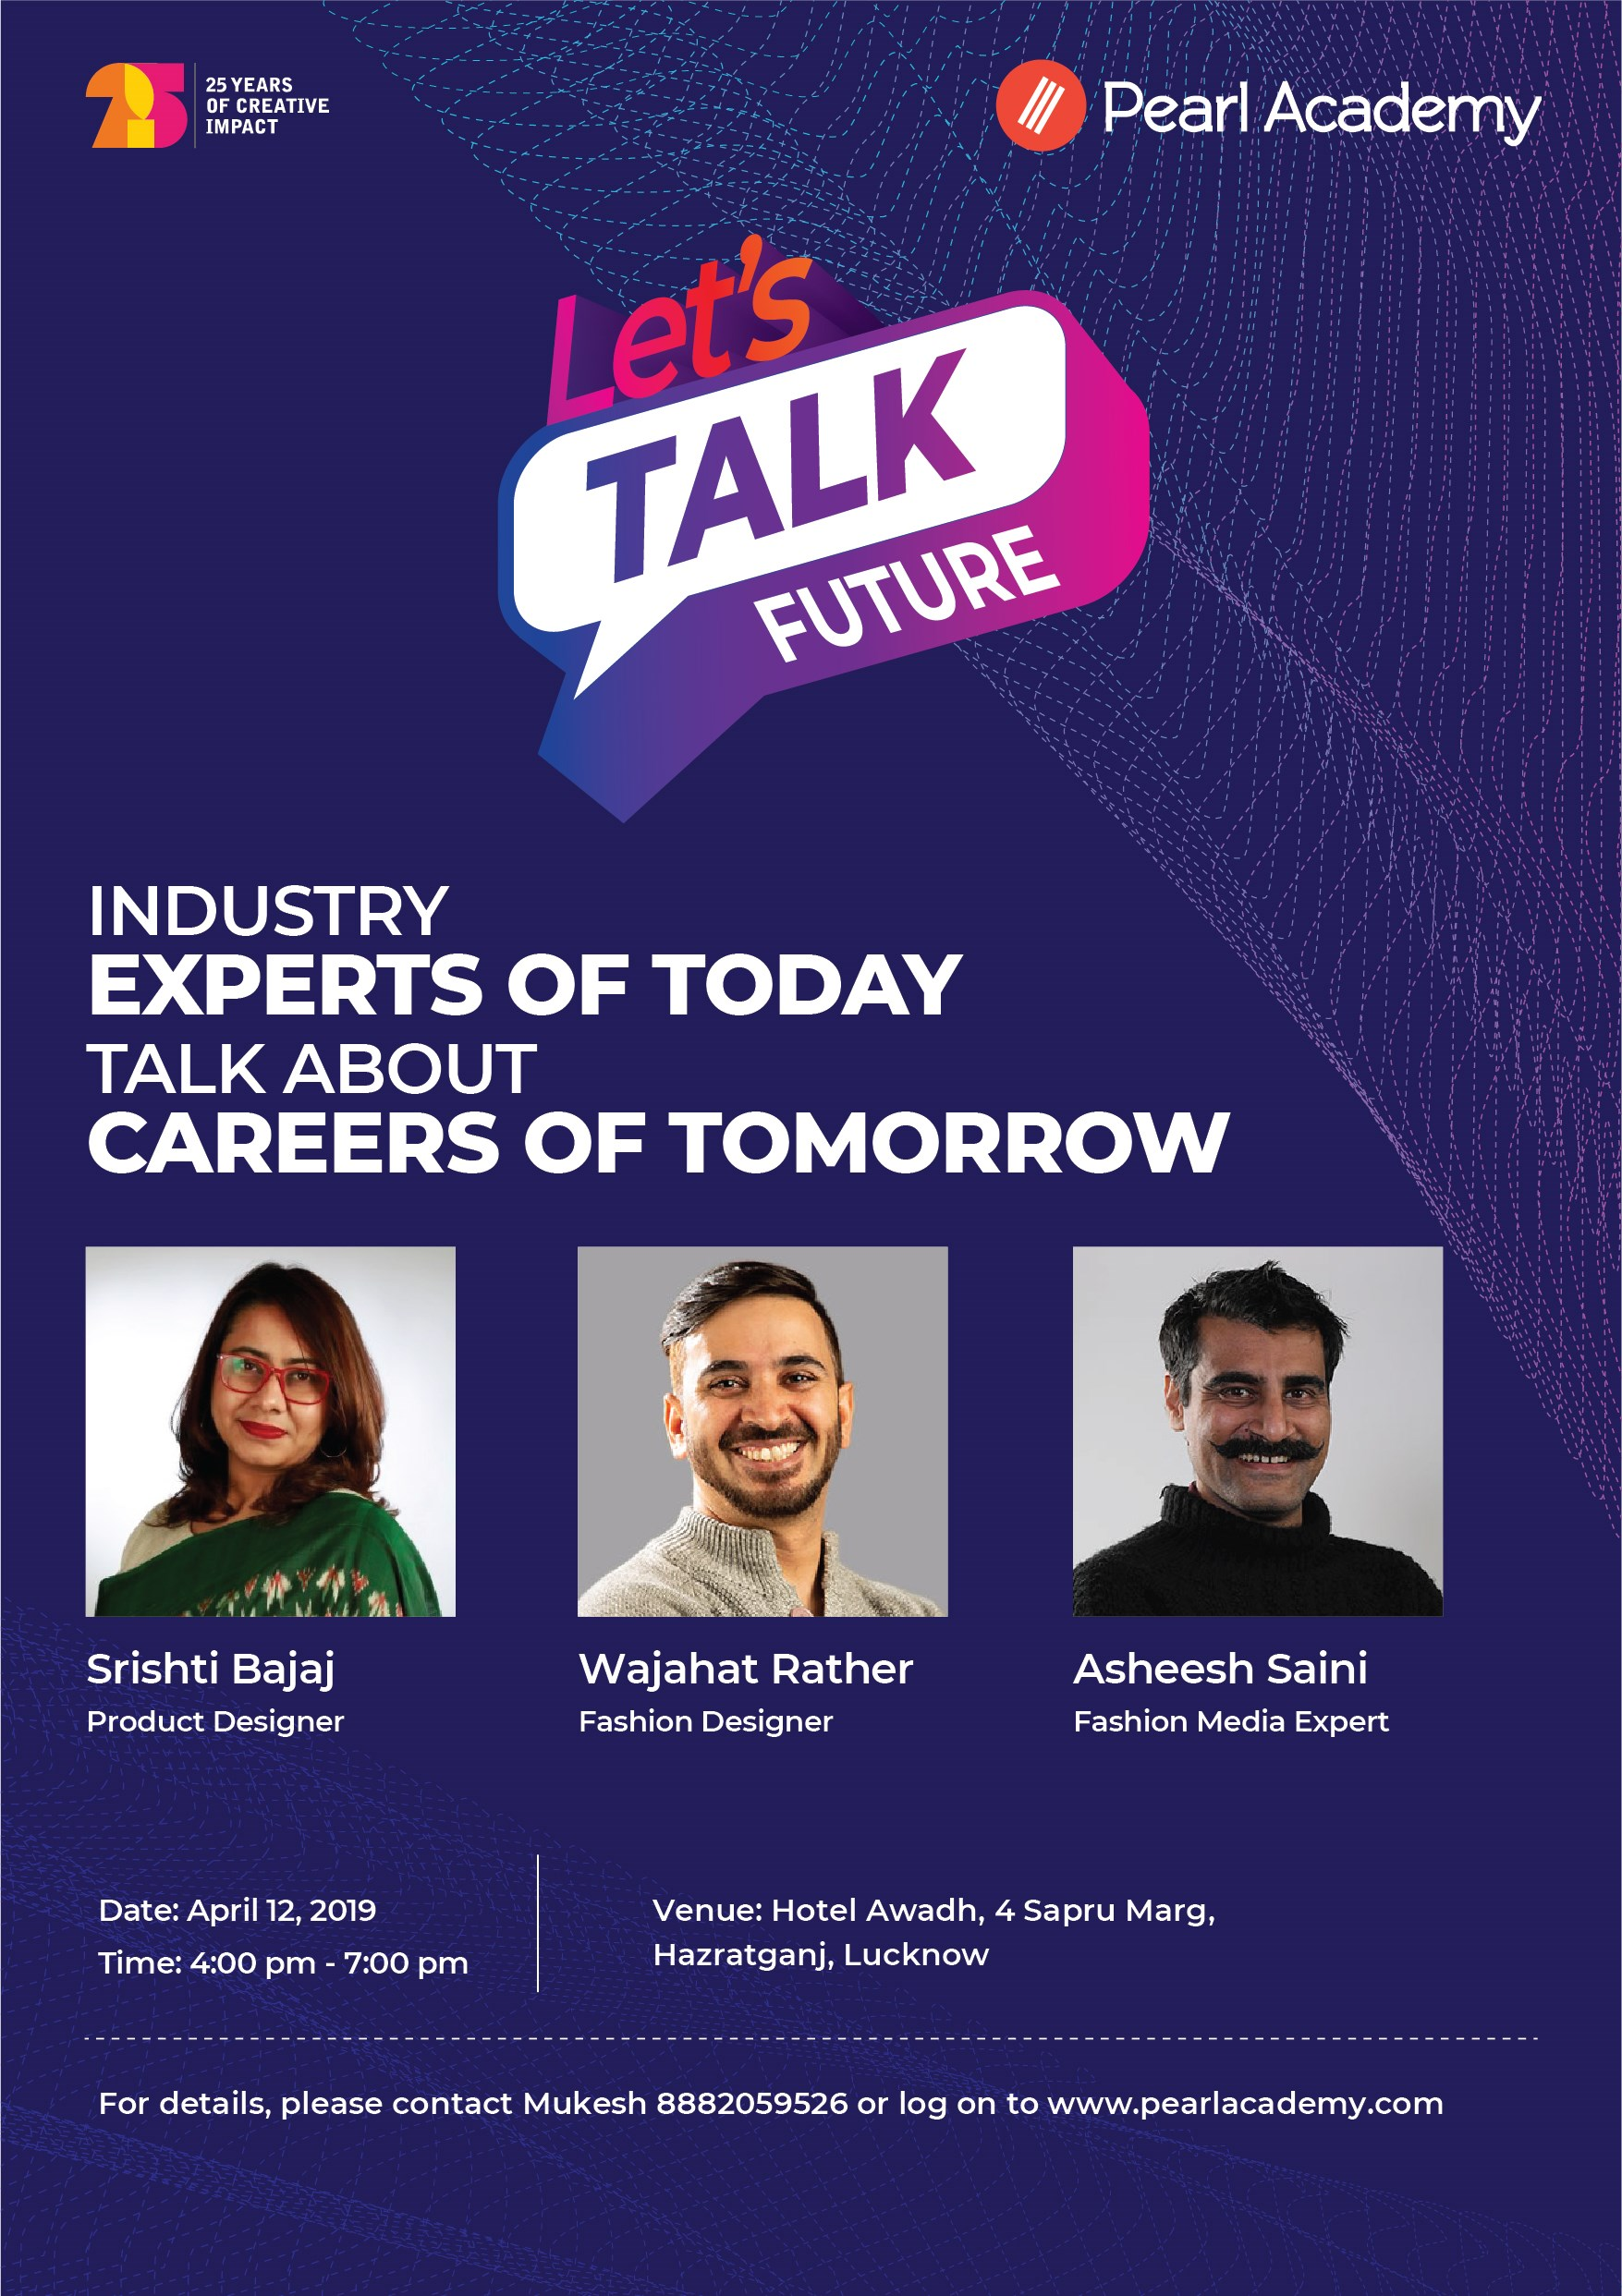 let's talk future - lucknow